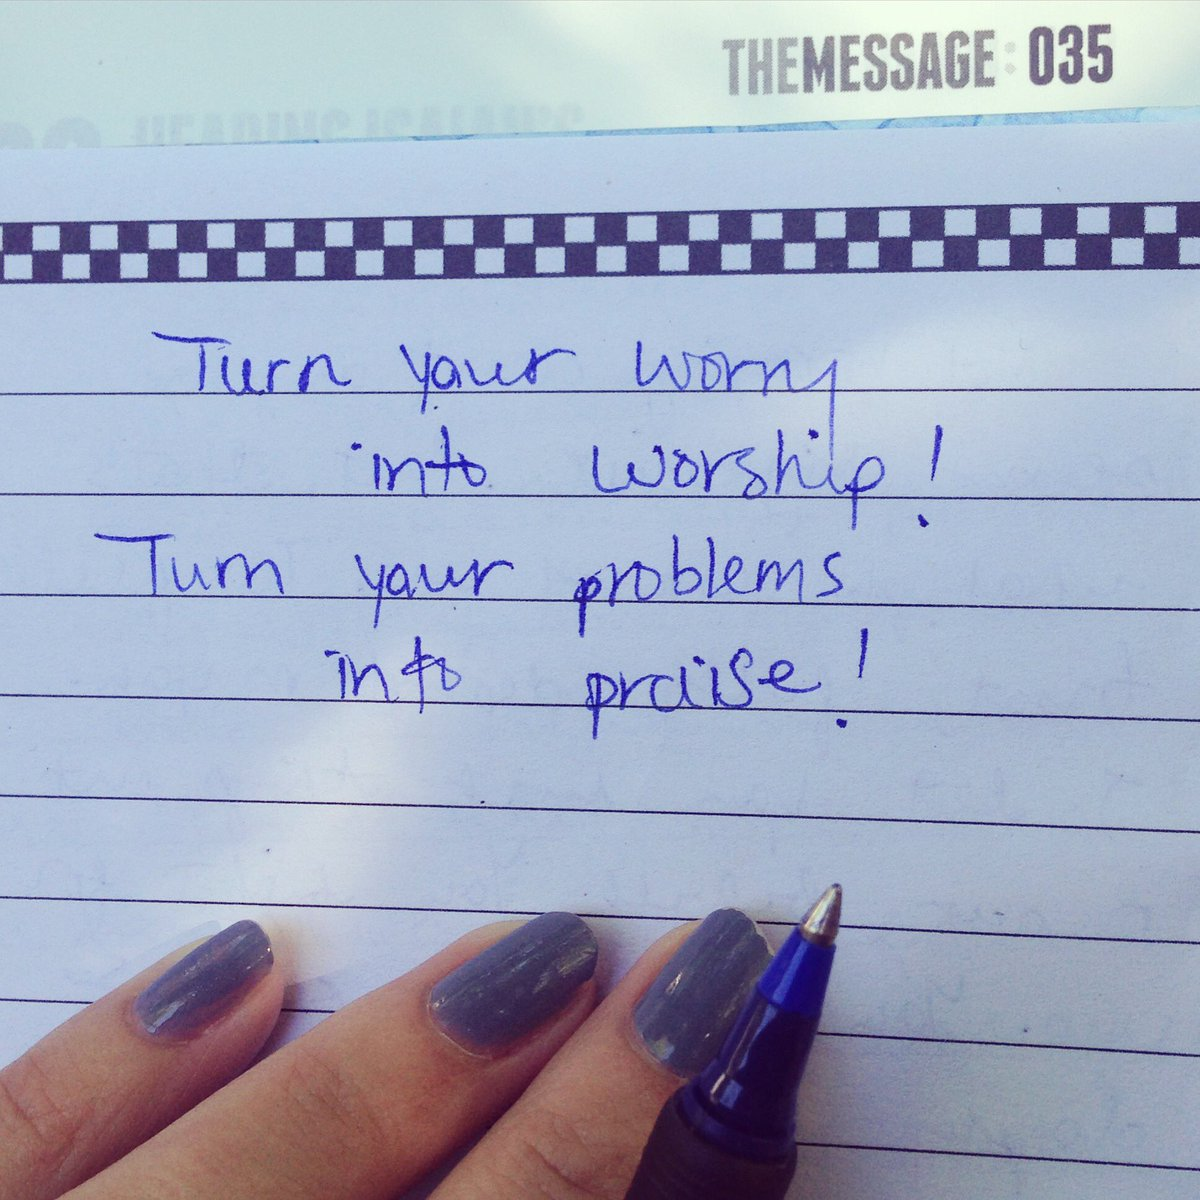 Jesus is challenging me this morning...to throw my hands up and my worries down! #thegodiknow https://t.co/iPtIzxzjJL